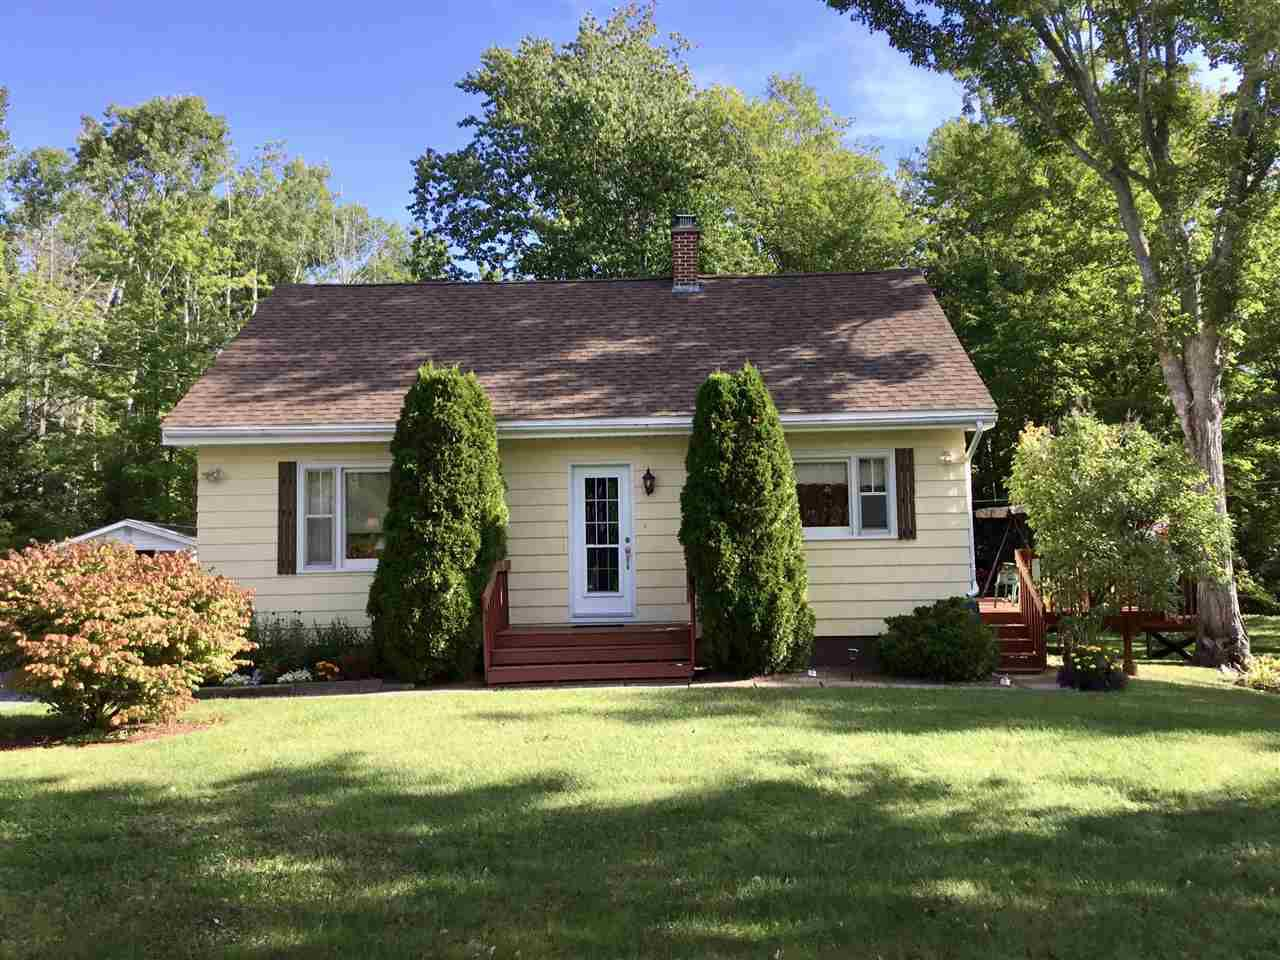 Main Photo: 7745 Highway 6 in Haliburton: 108-Rural Pictou County Residential for sale (Northern Region)  : MLS®# 201901728